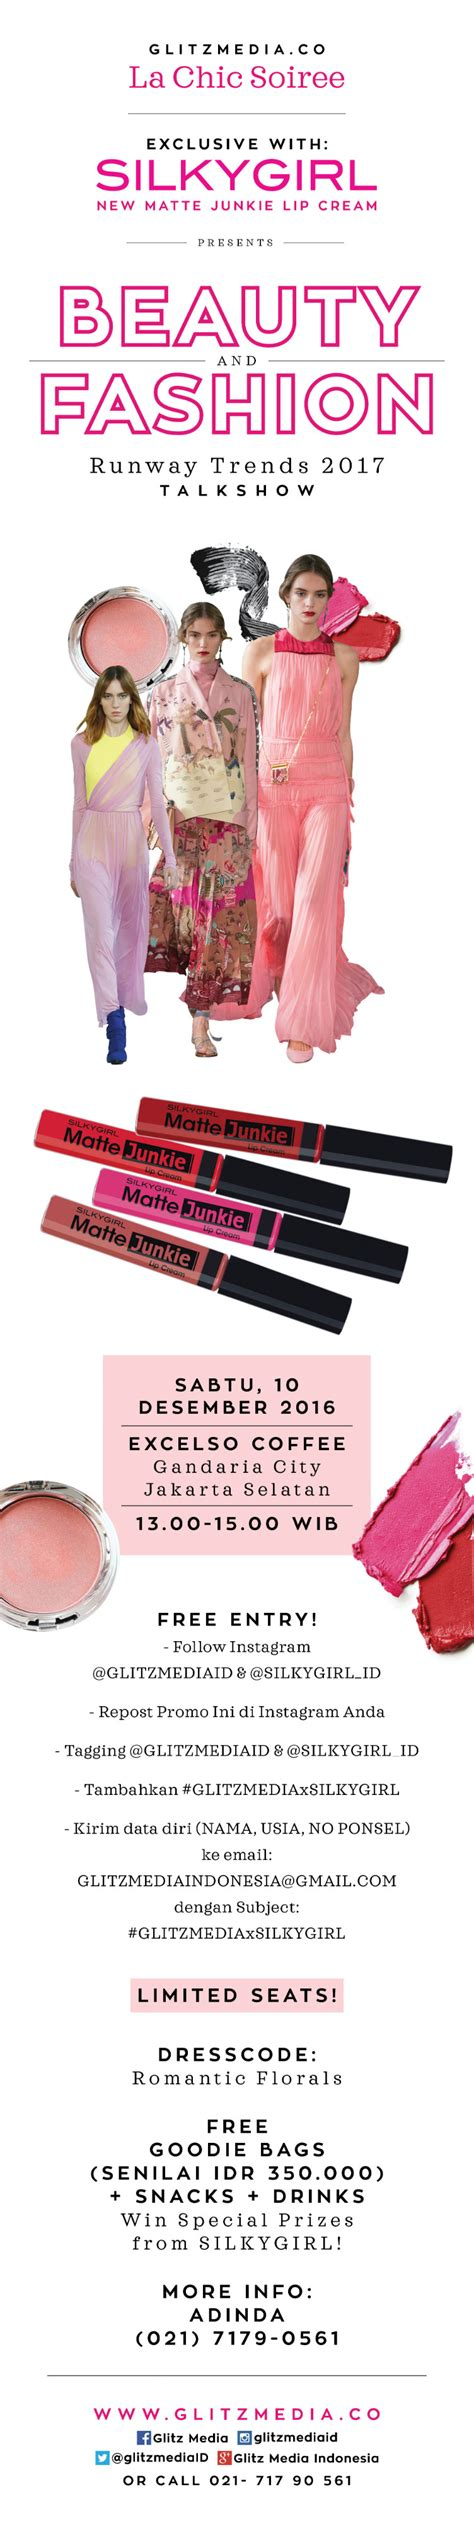 Silkygirl Matte Junkie Indonesia bye touch ups silkygirl matte junkie lip rahasia